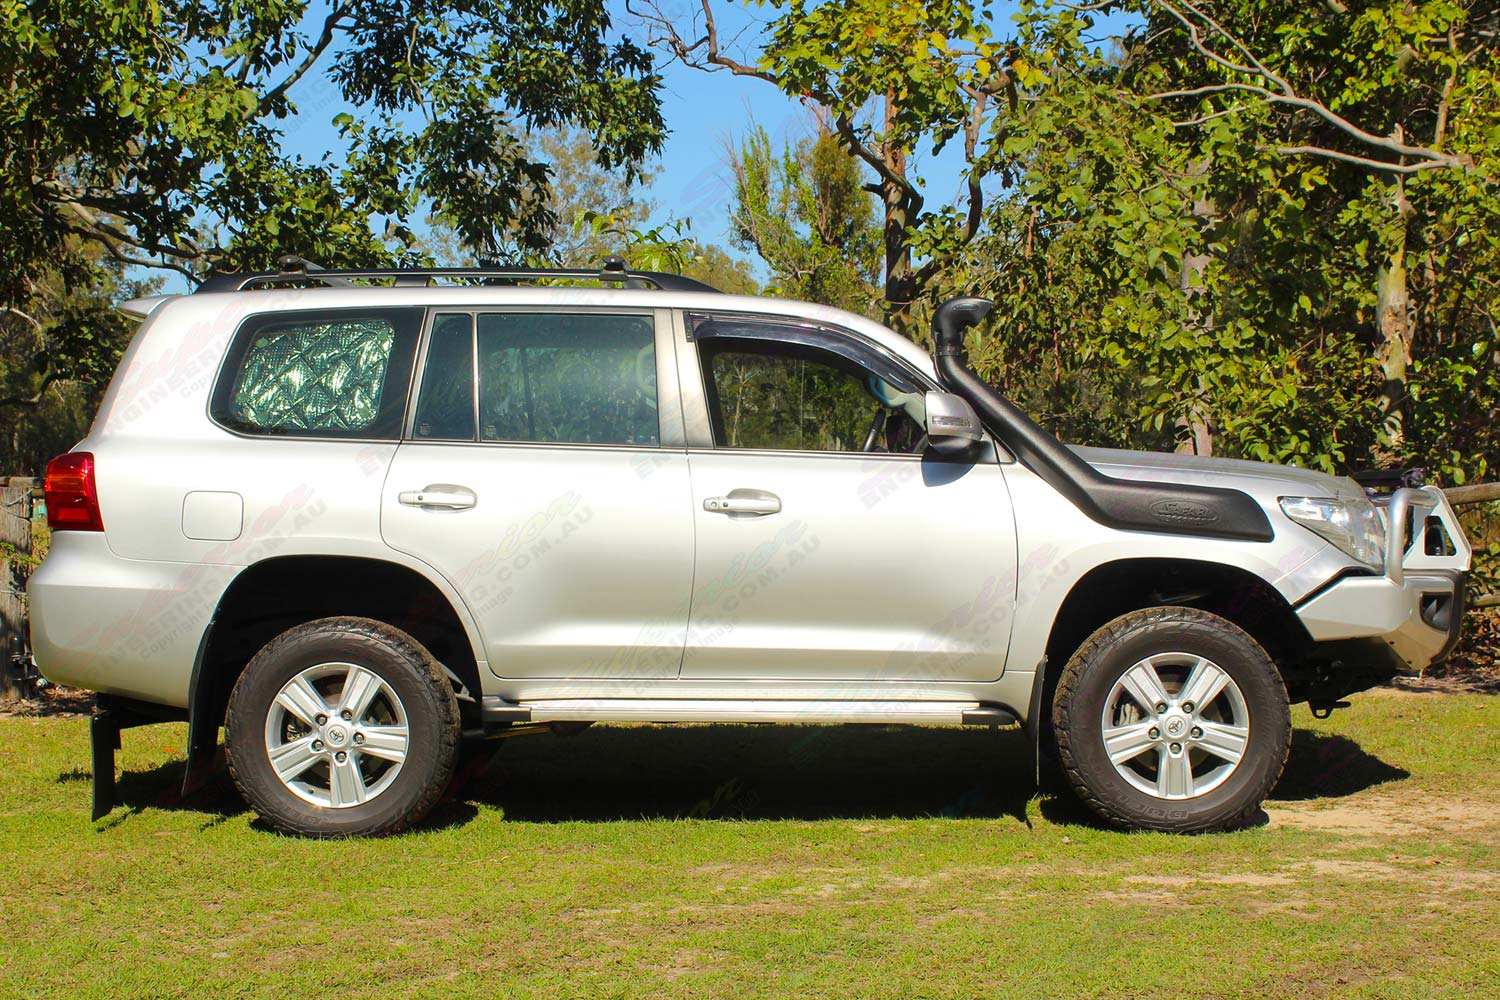 Right side view of a silver 200 Series Toyota Landcruiser after being fitted with a heavy duty 2 inch Profender 4x4 lift kit